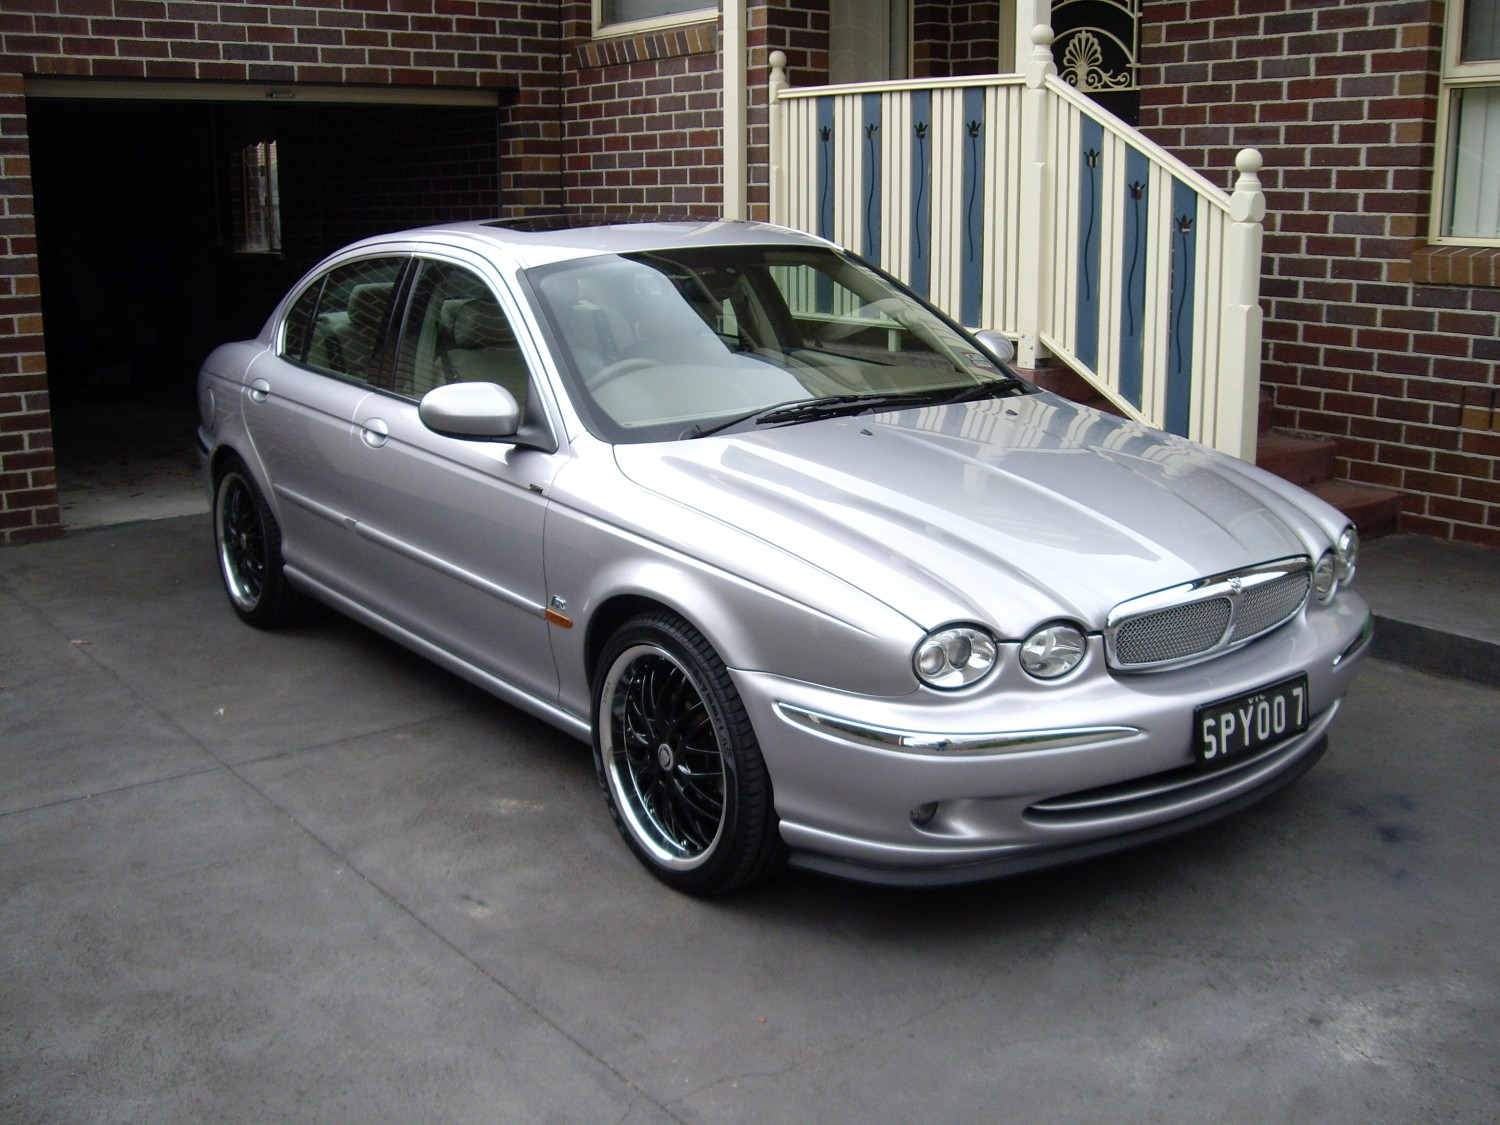 2001 jaguar x type r show shine shannons club. Black Bedroom Furniture Sets. Home Design Ideas